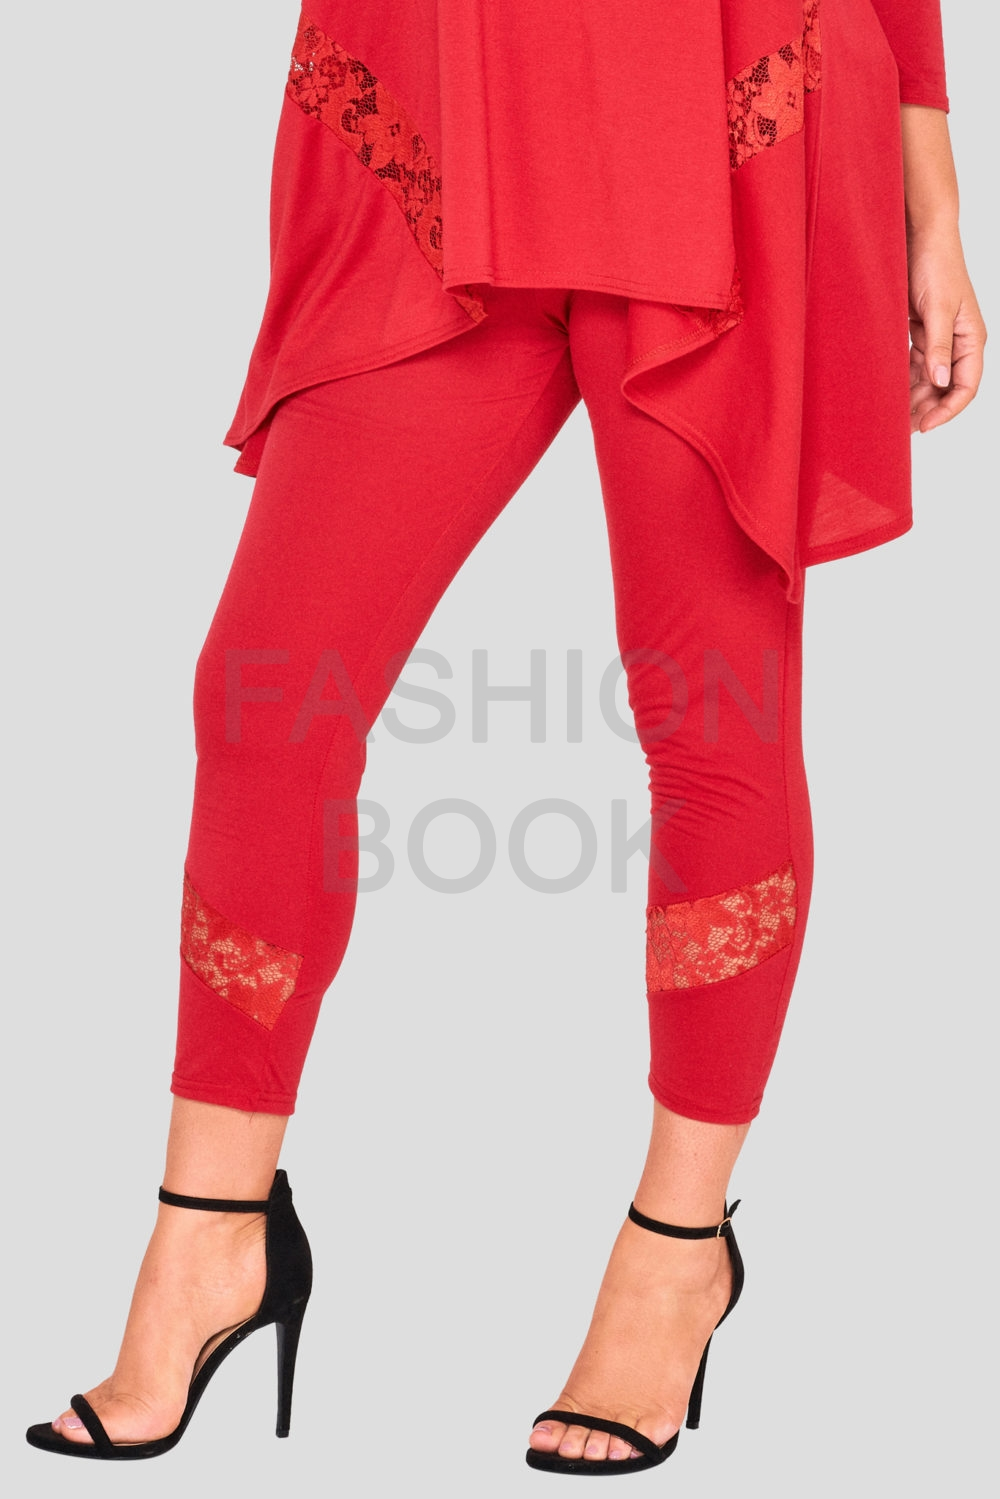 Fashionbook Wholesale Plus Size Lace Legging Red